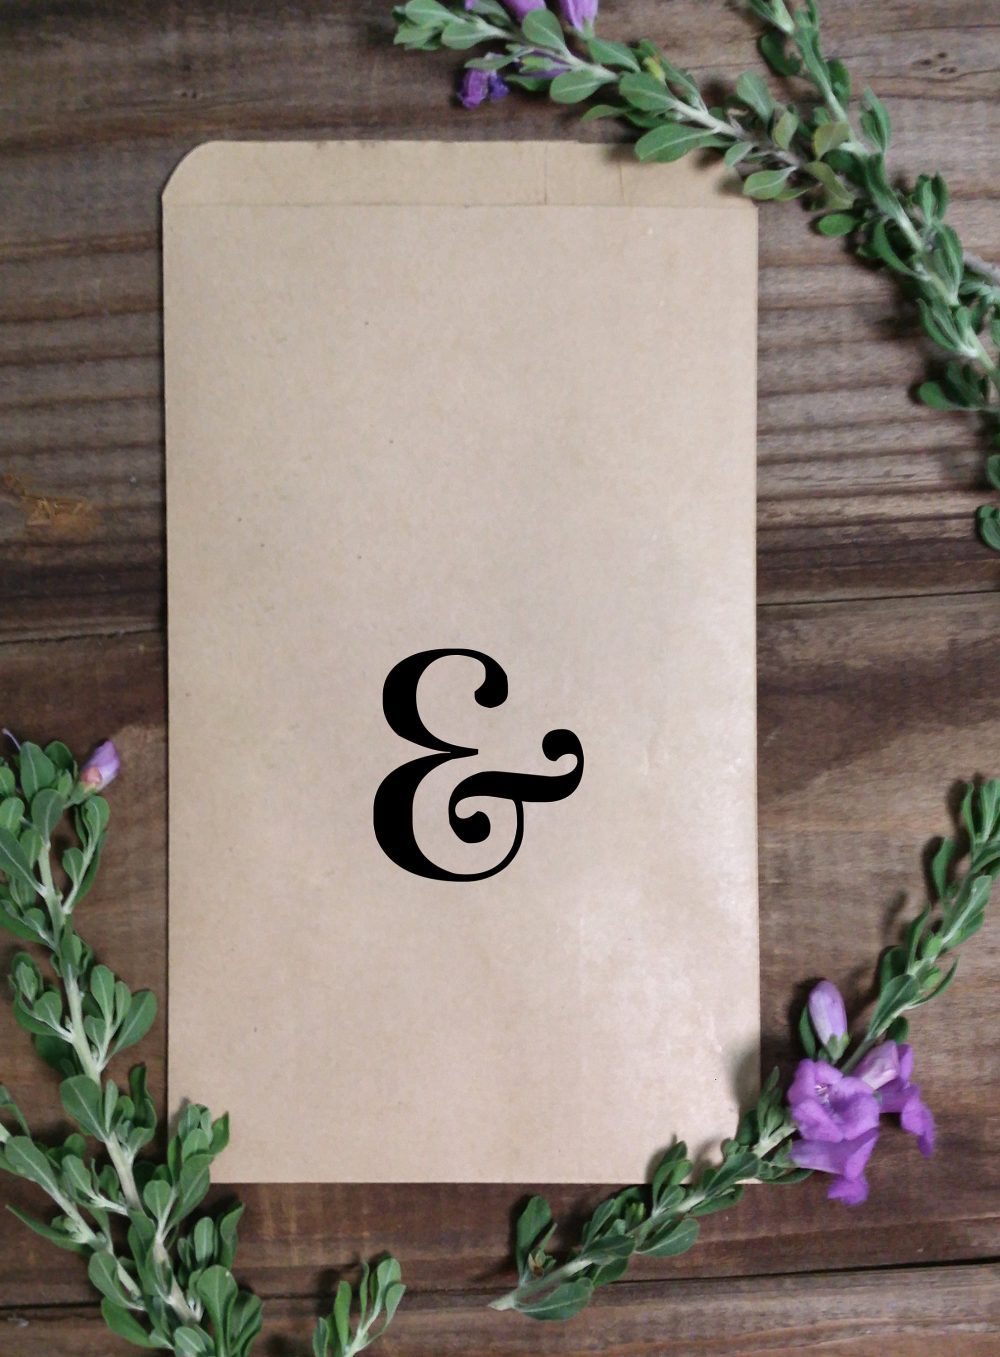 Ampersand & Favor Wedding Treat Bags, Goodie Country Wedding, Kraft Brown With Love, Rustic Popcorn, Candy